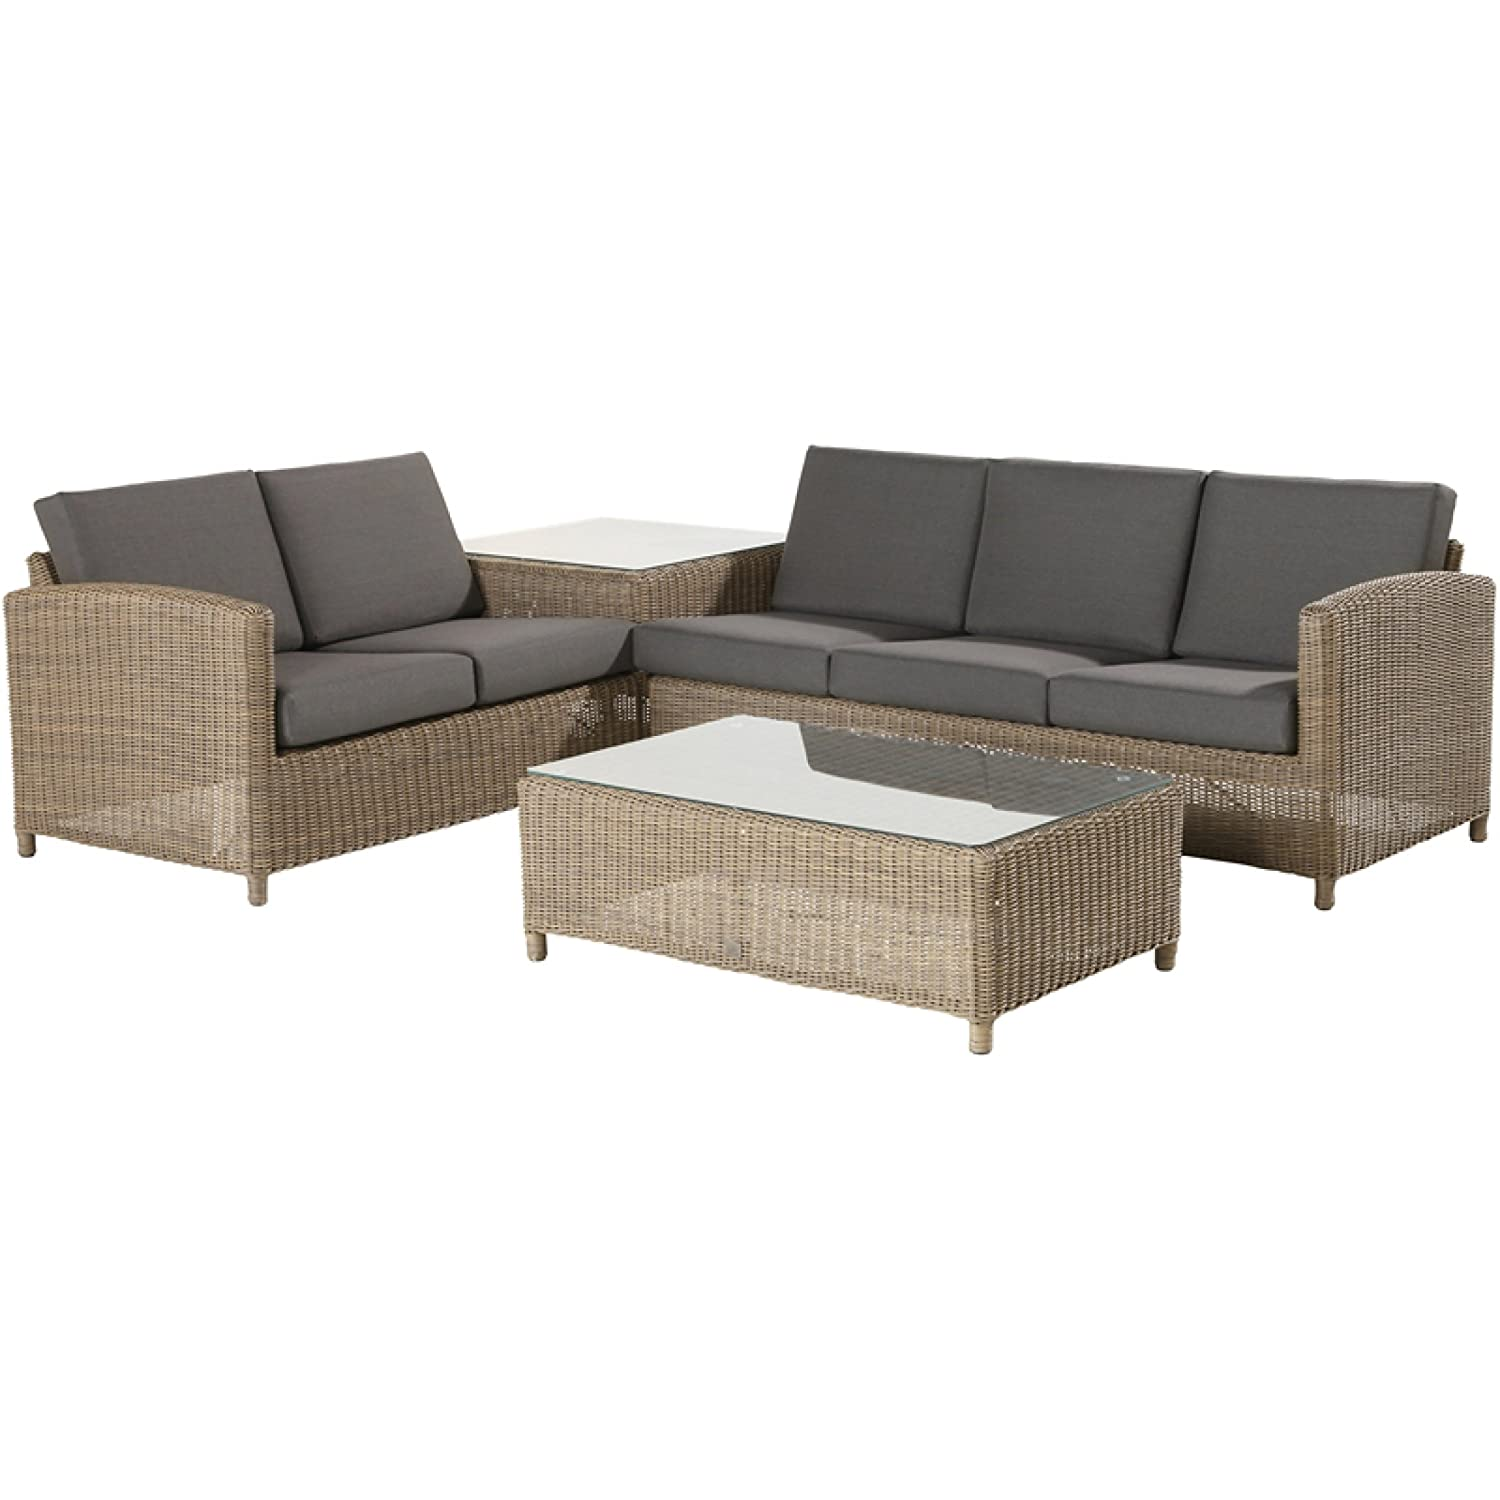 4Seasons Outdoor Lodge 3-teilige Loungegruppe mit Tischen Polyrattan Pure